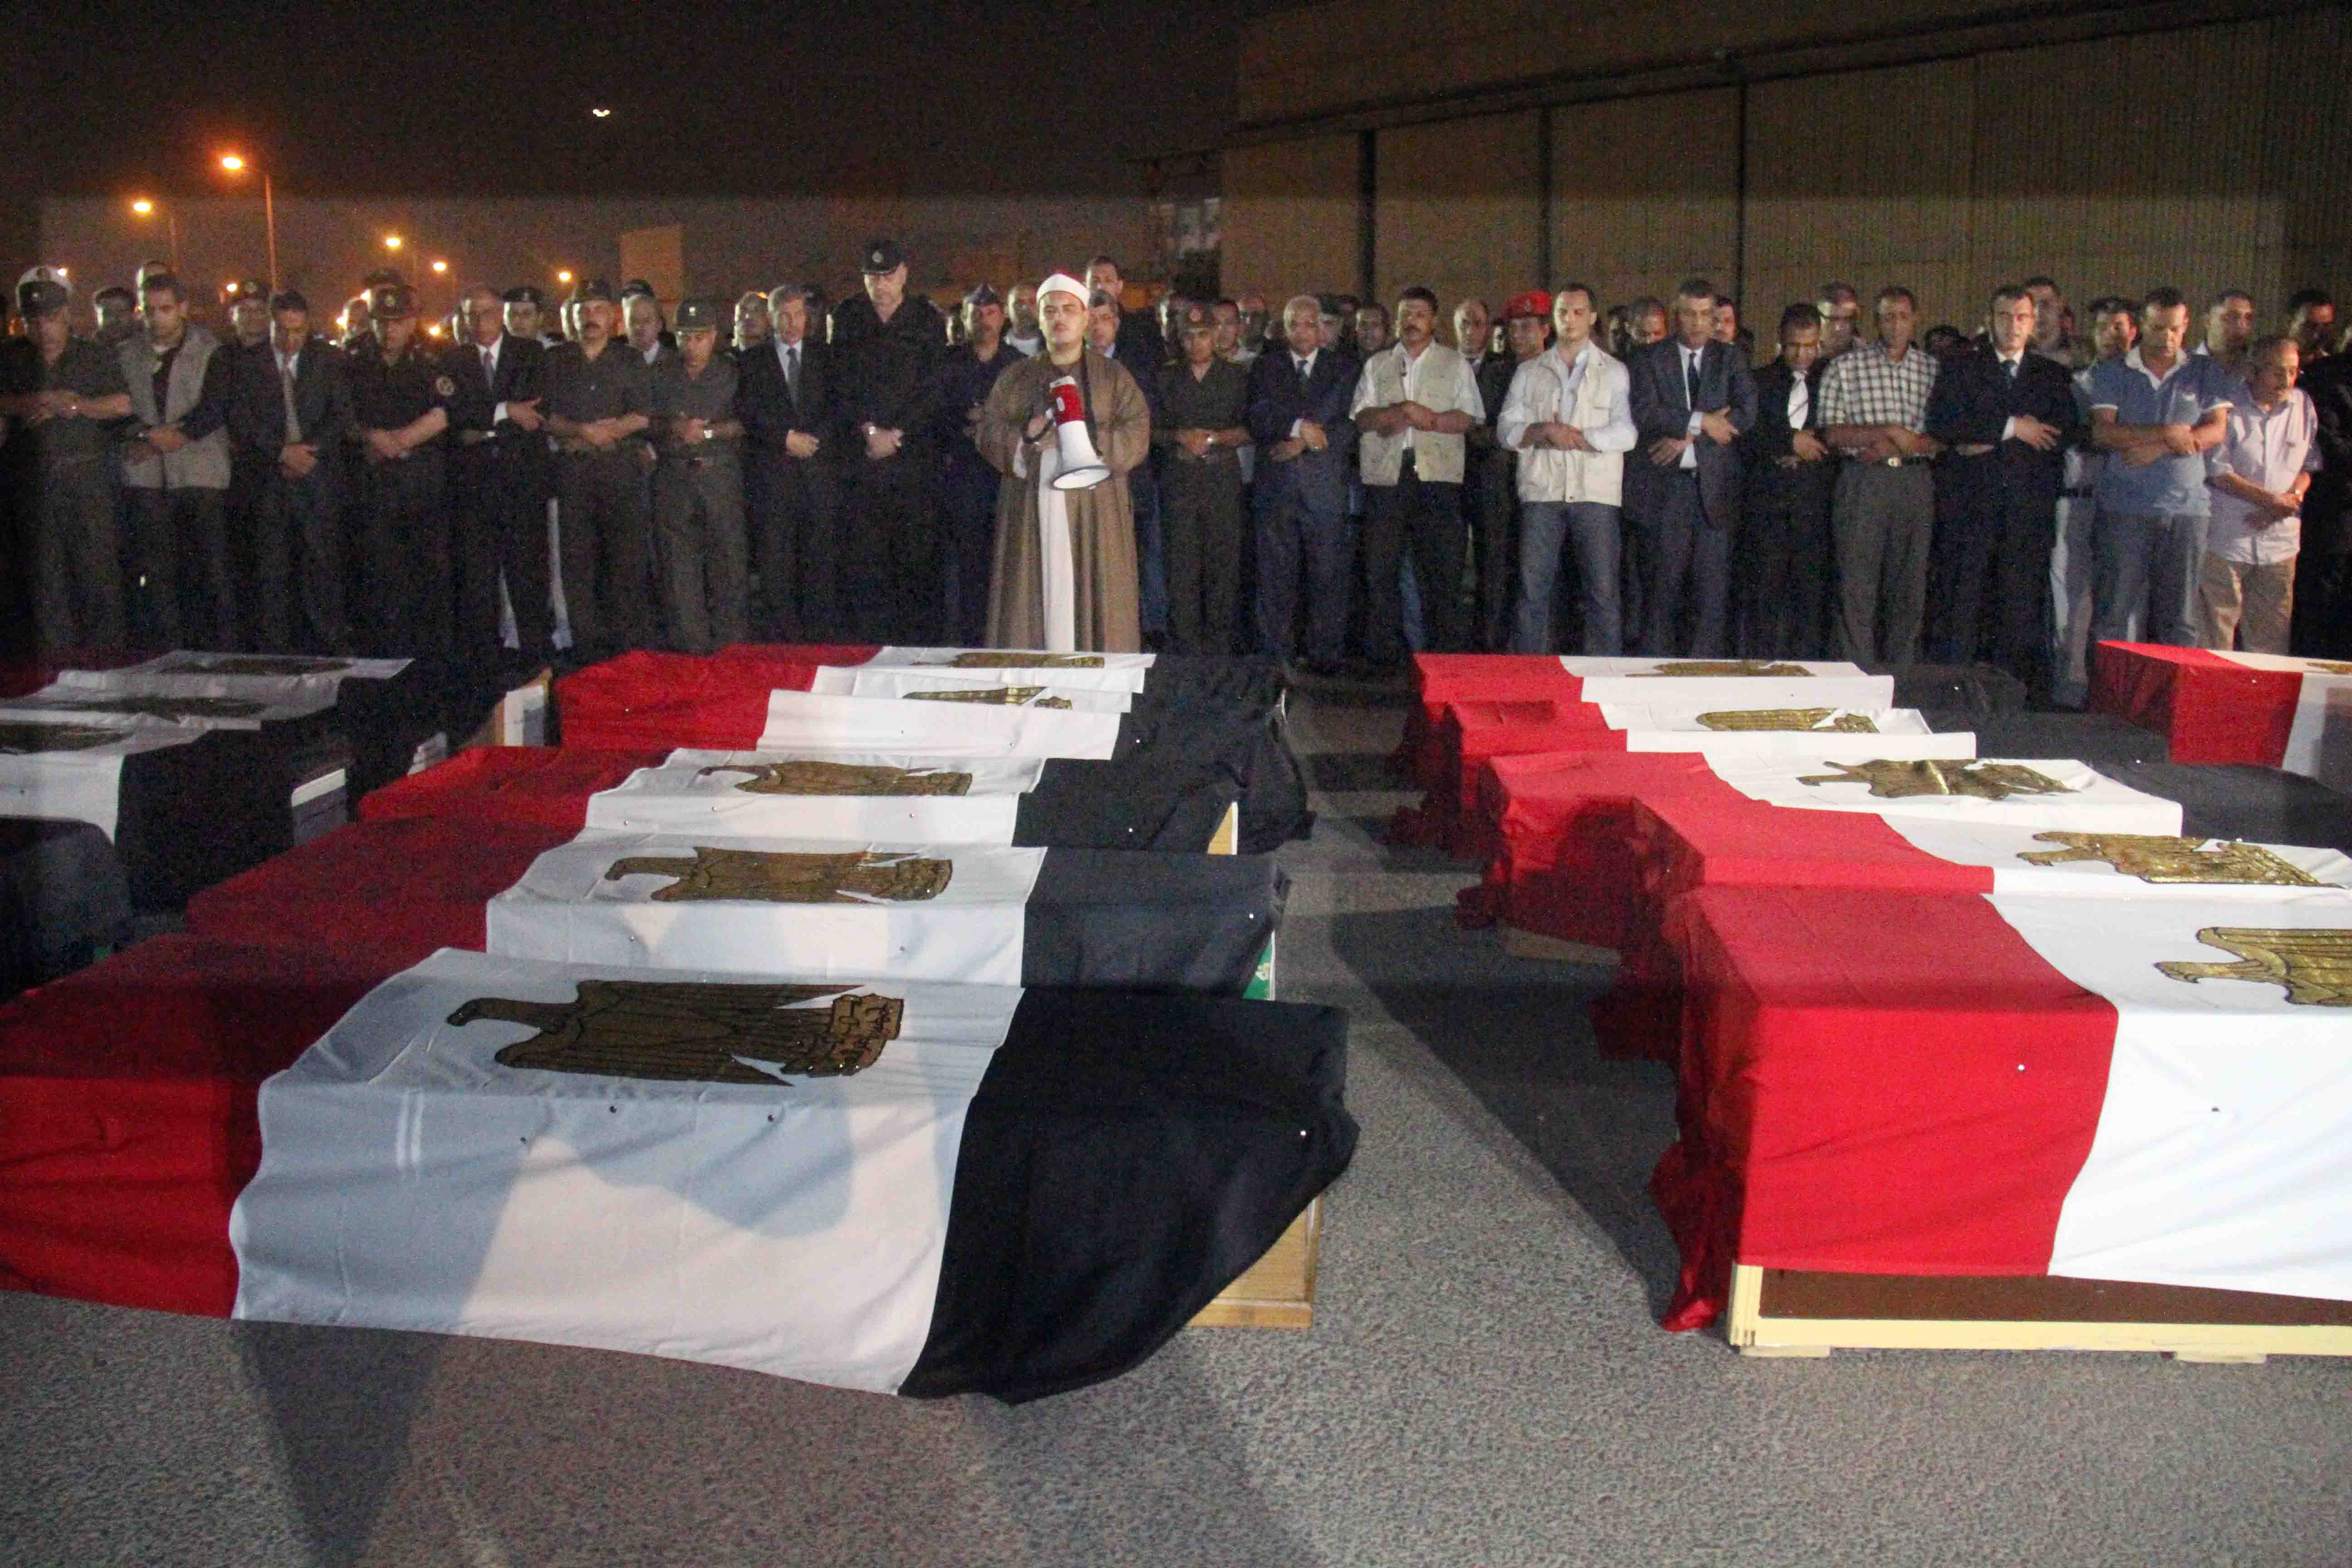 A military funeral was held for the 25 Central Security Forces soldiers executed in Sinai in Augest 2013. (DNE File Photo)